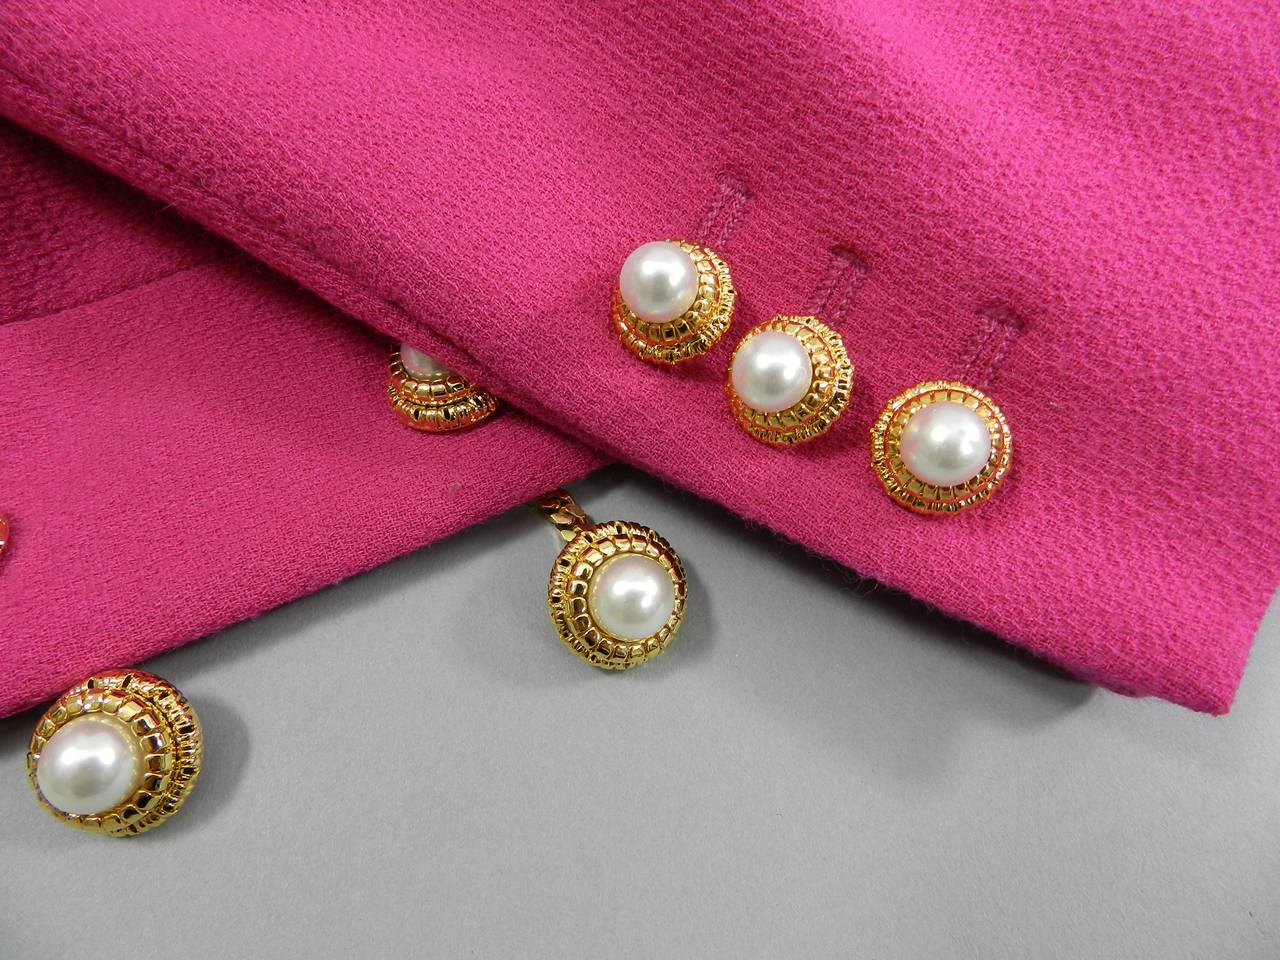 Moschino Hot Fuchsia Pink Jacket with Gold and Pearl Toggles 5